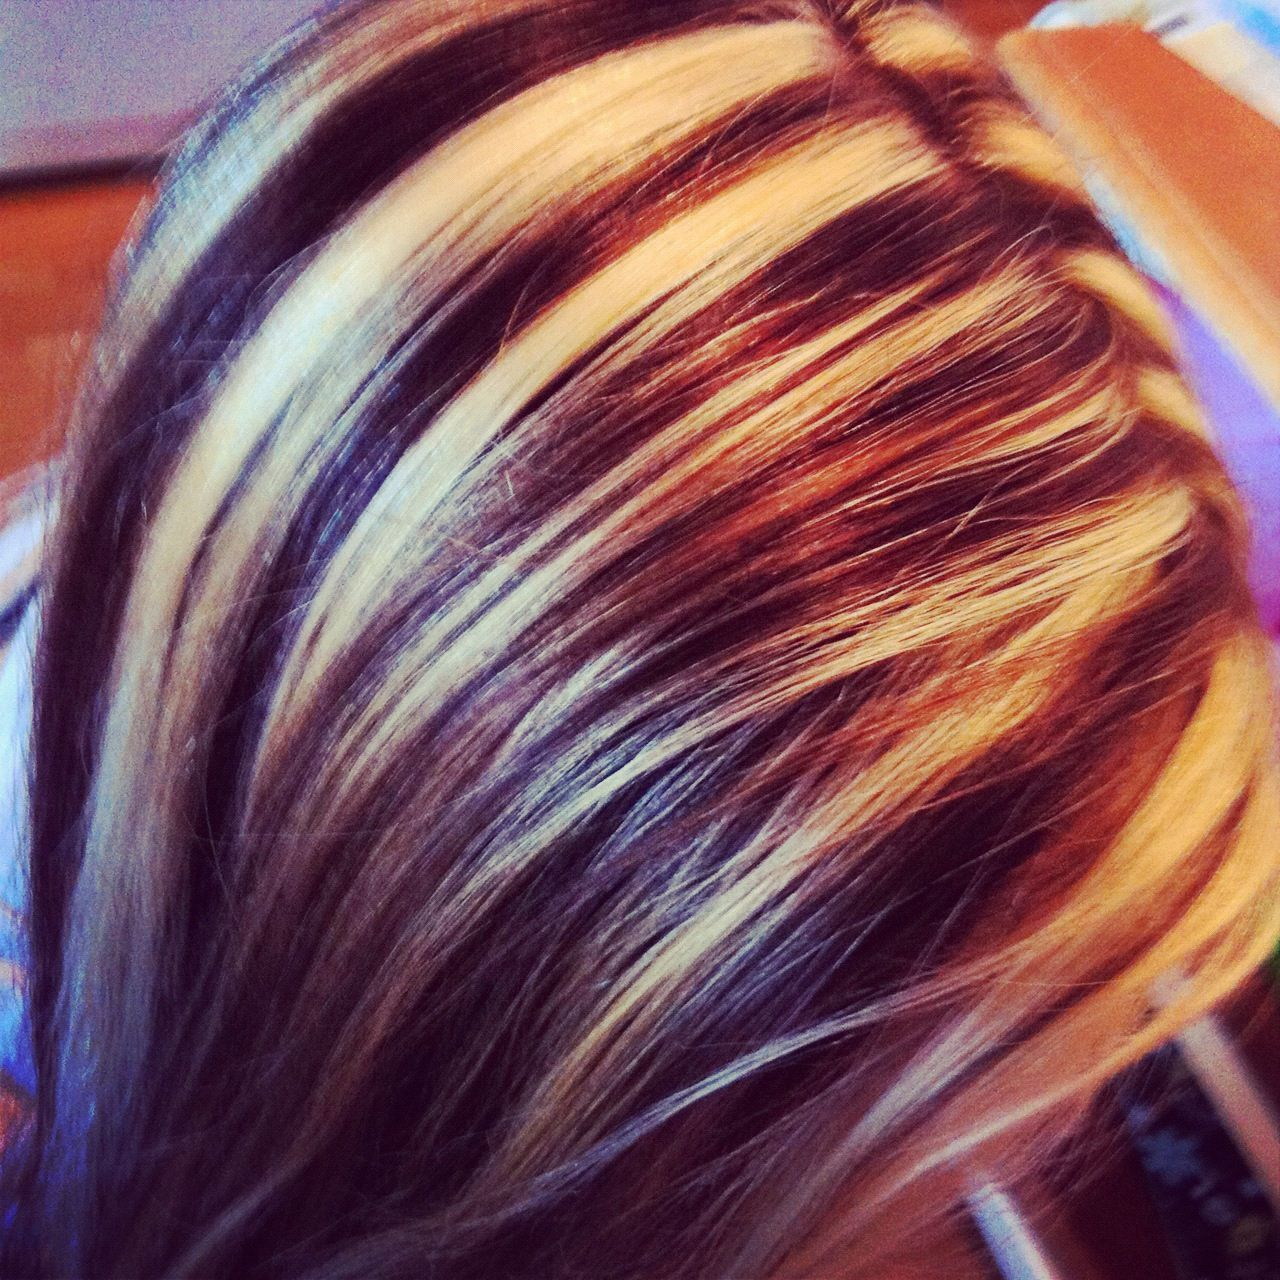 My friends hair i did chunky blonde and brown sliced high and low